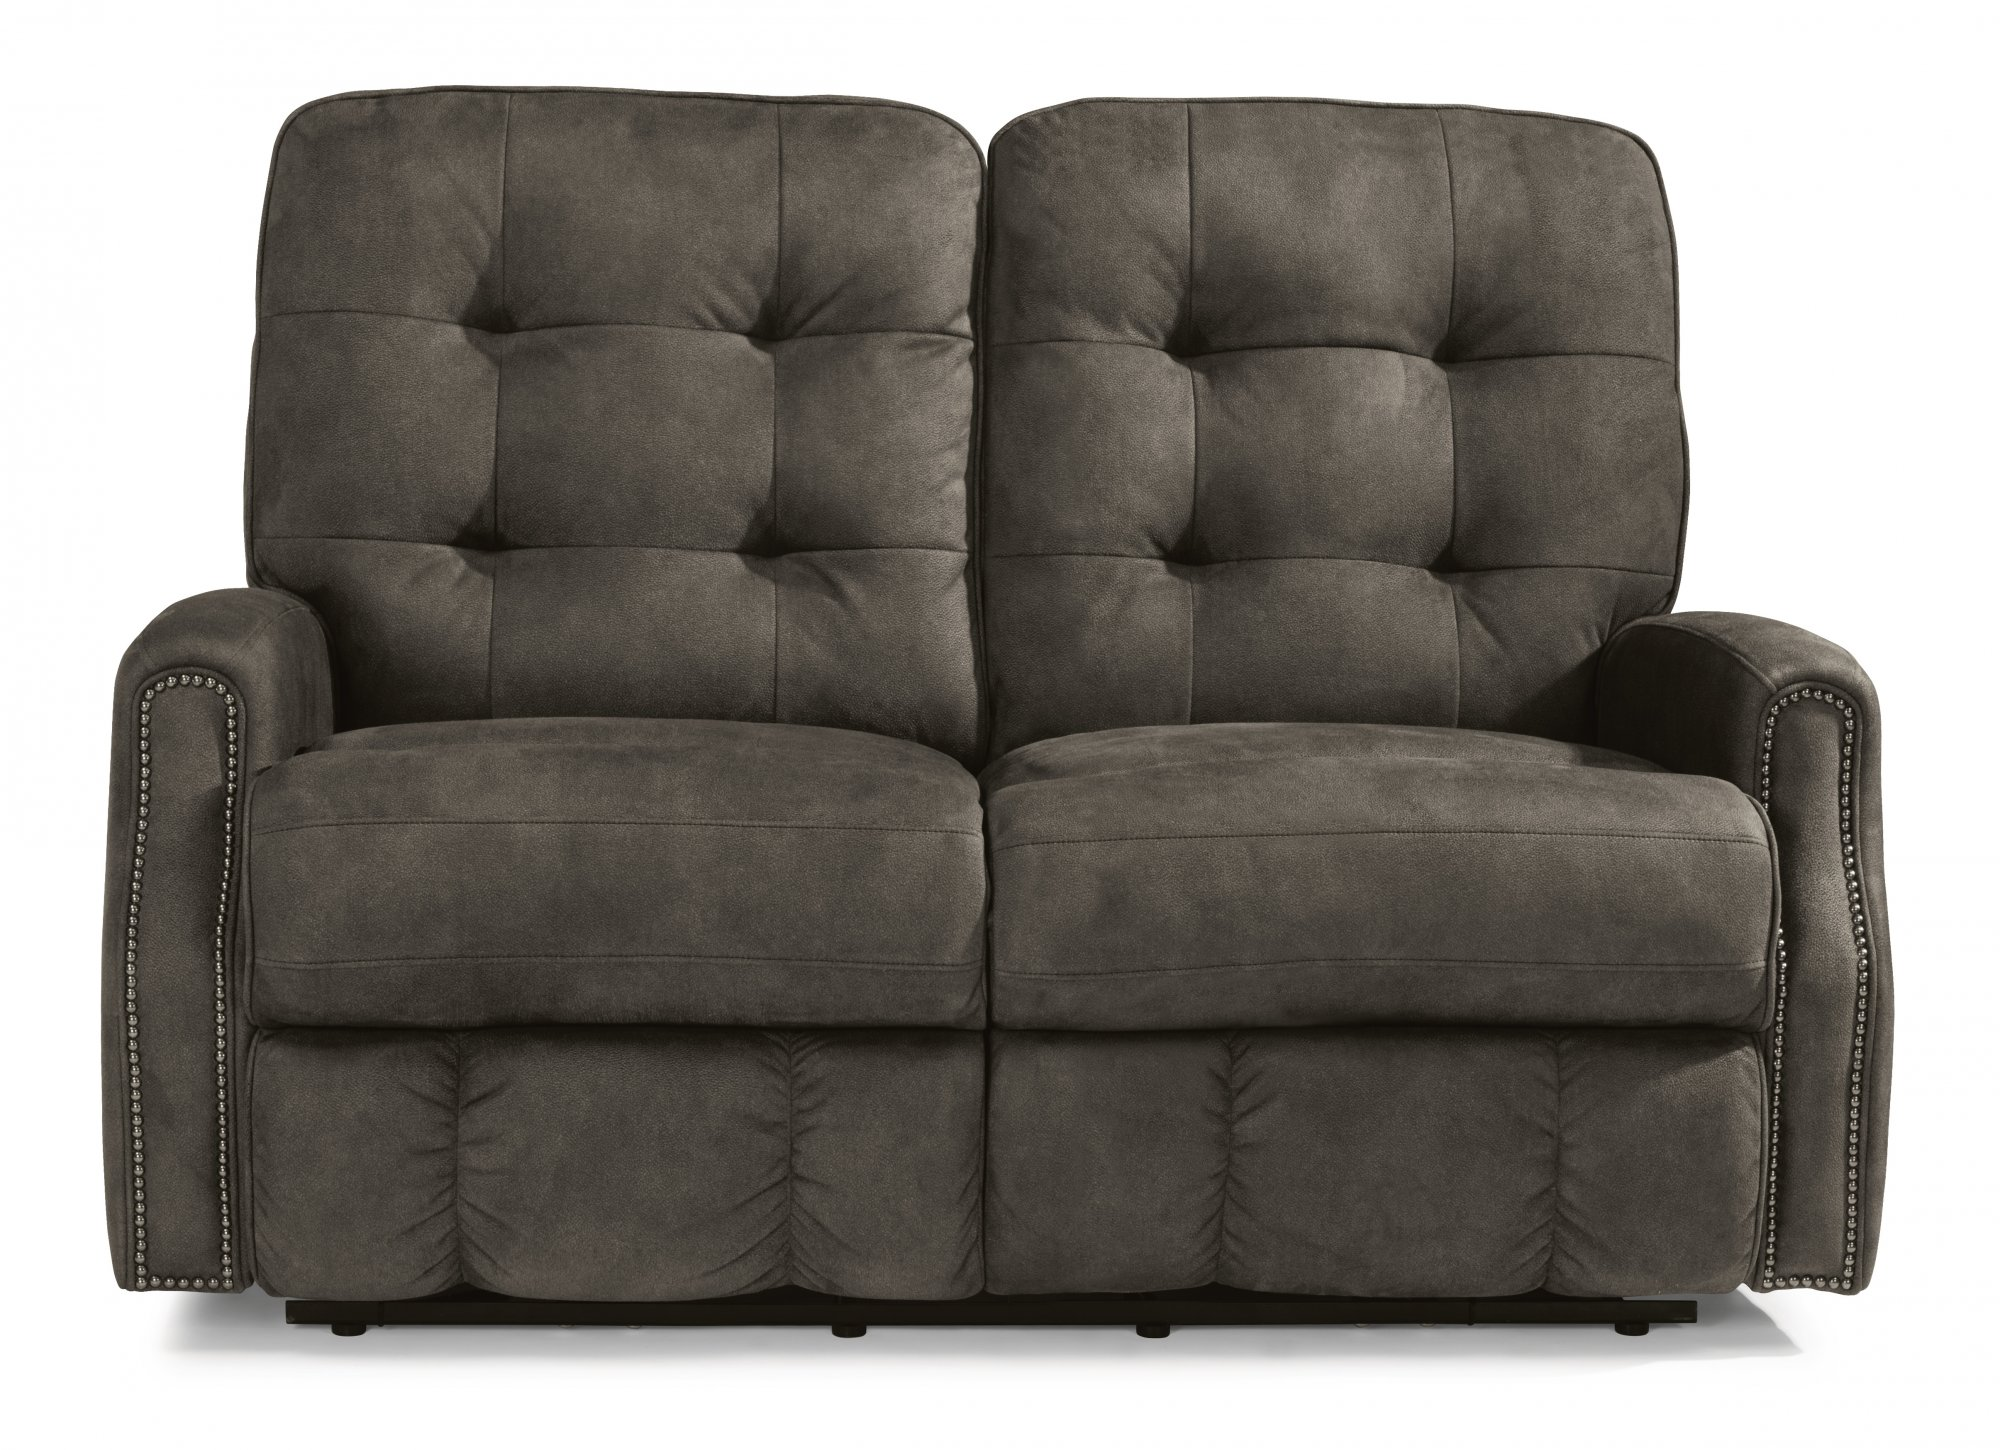 Prime Flexsteel 2881 60M Devon Fabric Power Reclining Loveseat Inzonedesignstudio Interior Chair Design Inzonedesignstudiocom